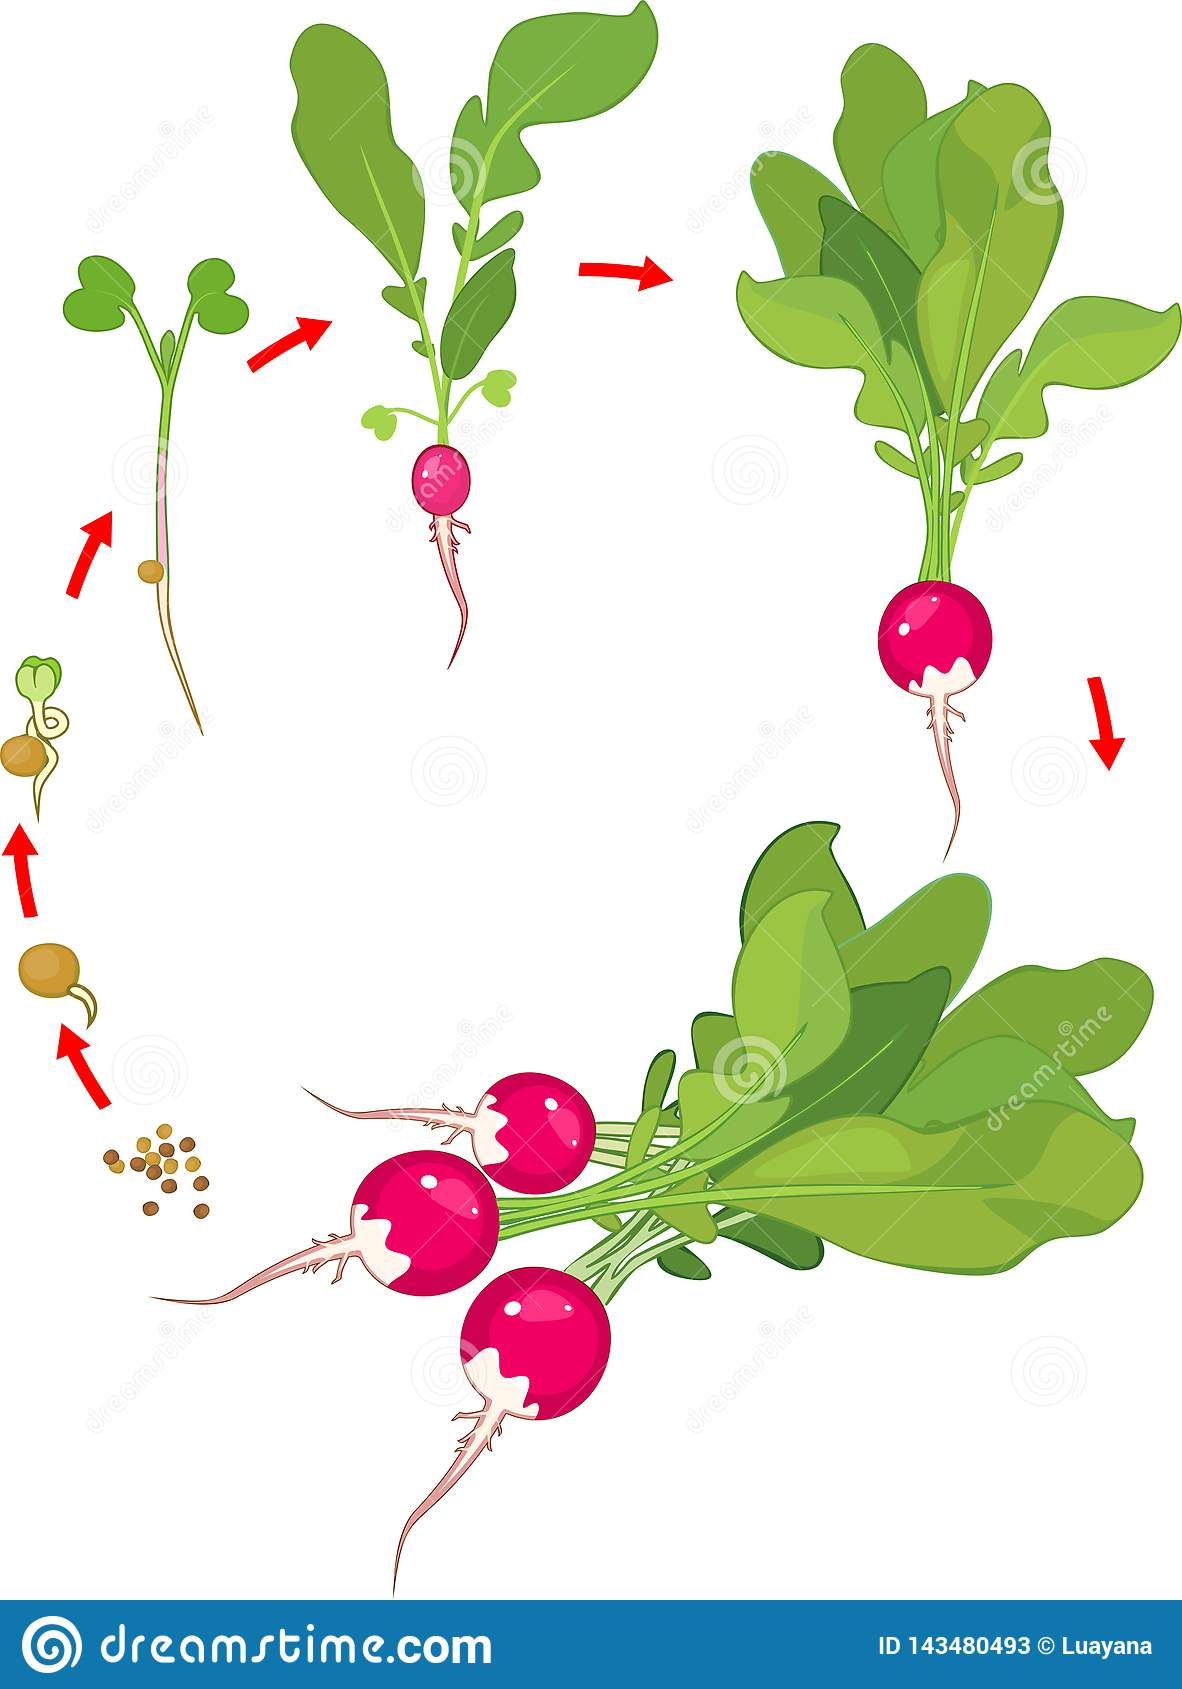 Life Cycle Of Radish Plant Stages Of Radish Growth From